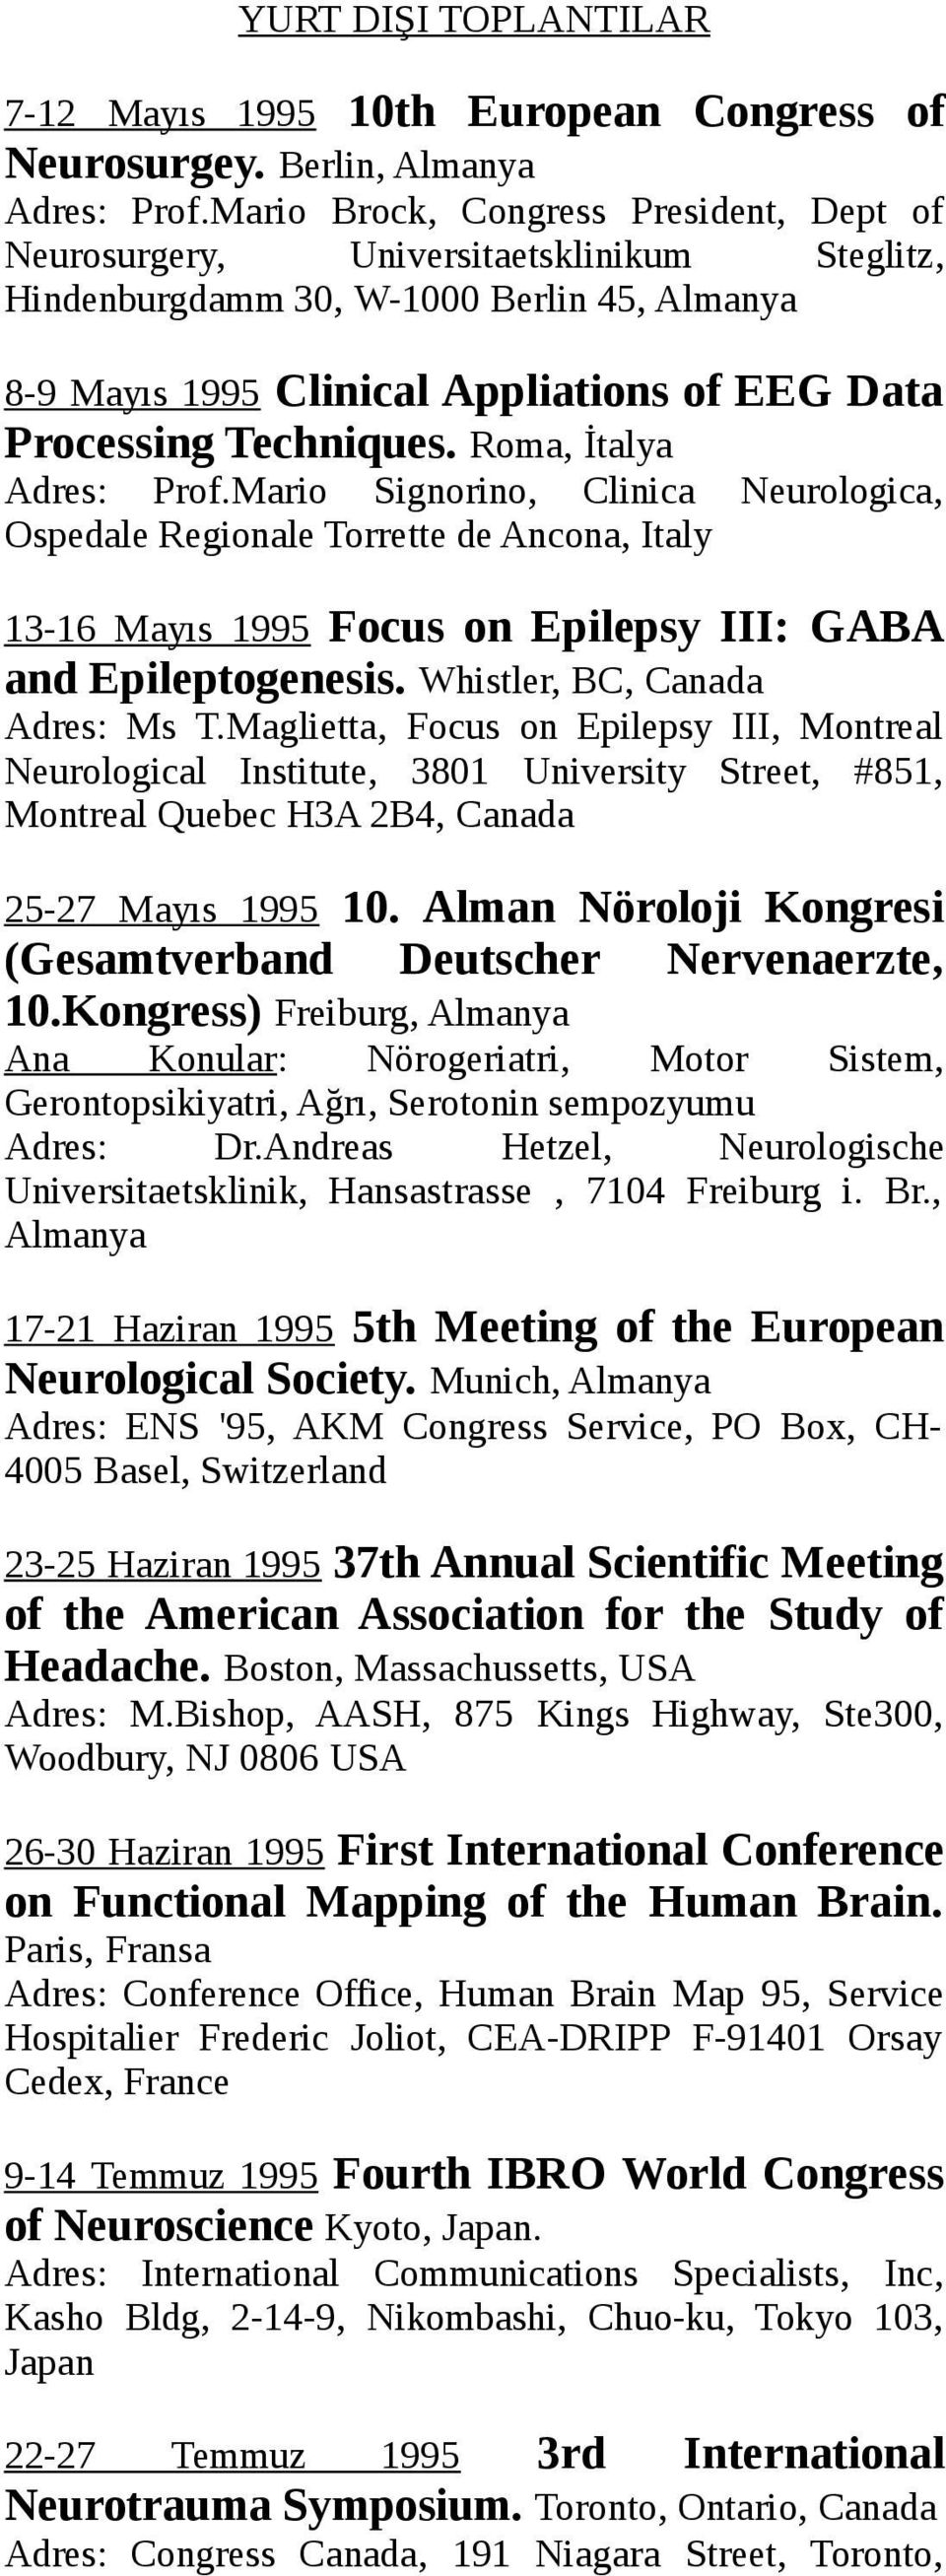 Techniques. Roma, İtalya Adres: Prof.Mario Signorino, Clinica Neurologica, Ospedale Regionale Torrette de Ancona, Italy 13-16 Mayıs 1995 Focus on Epilepsy III: GABA and Epileptogenesis.